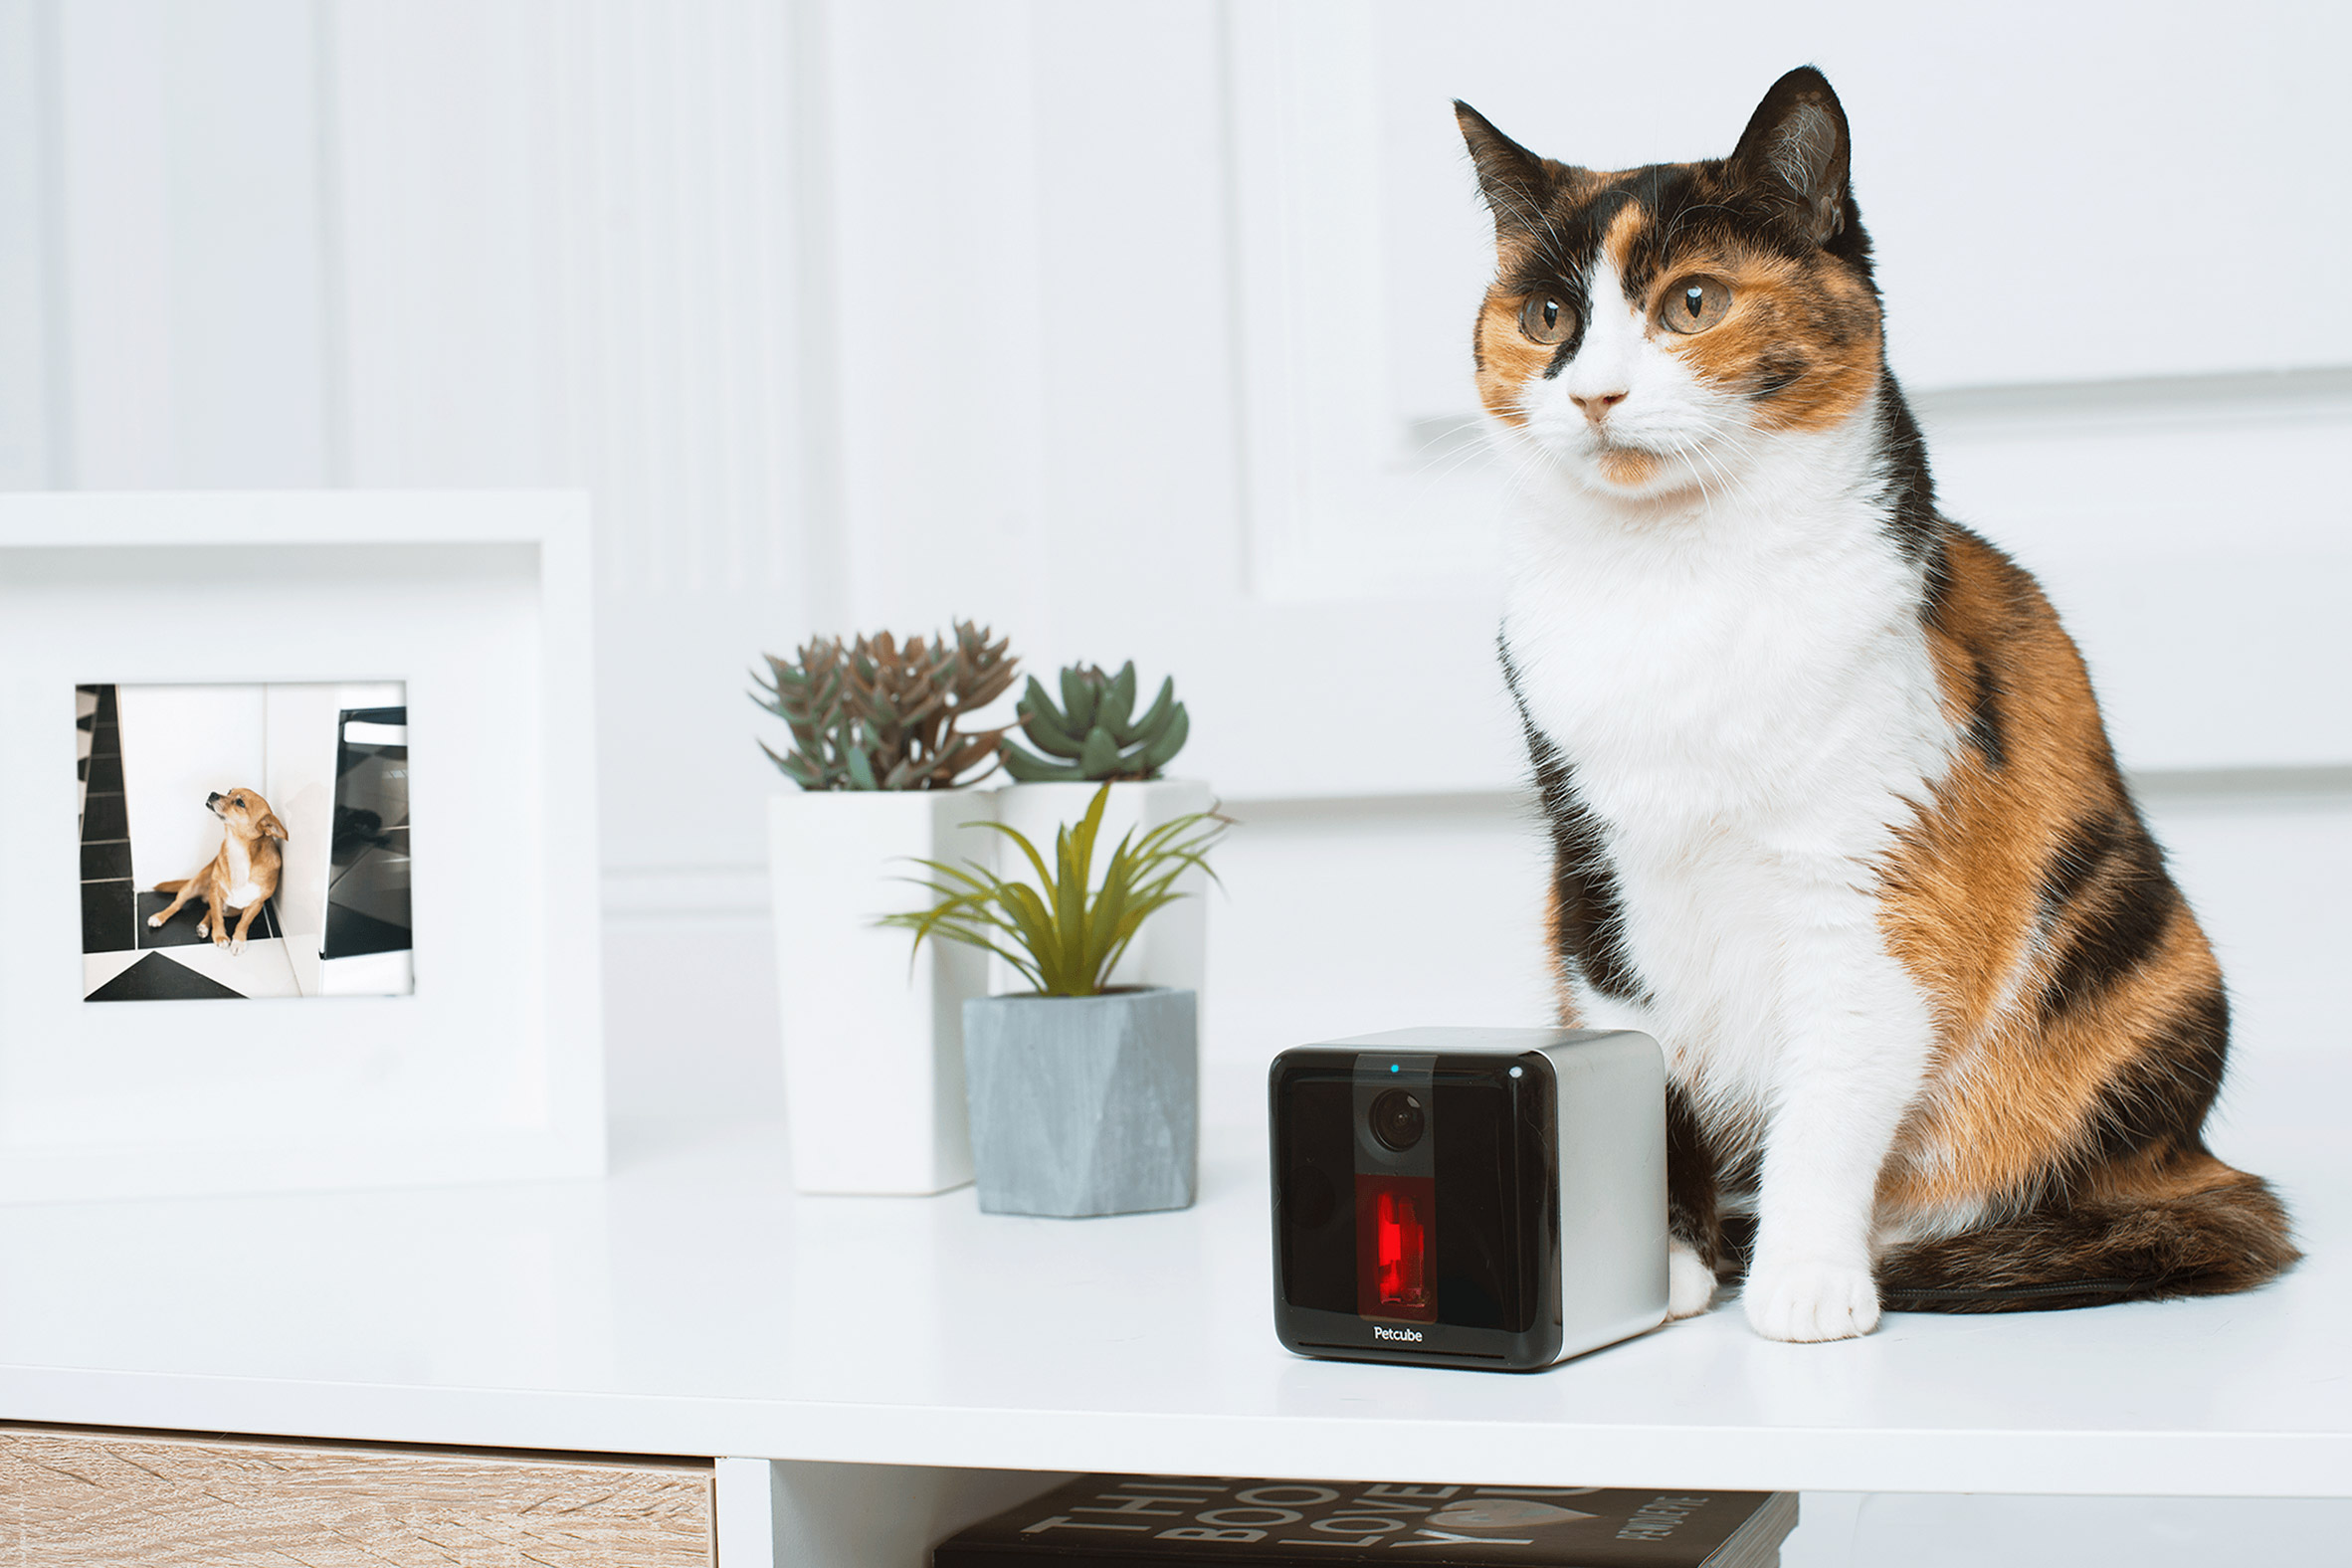 Petcube Play lets you interact with your pet remotely from a smartphone